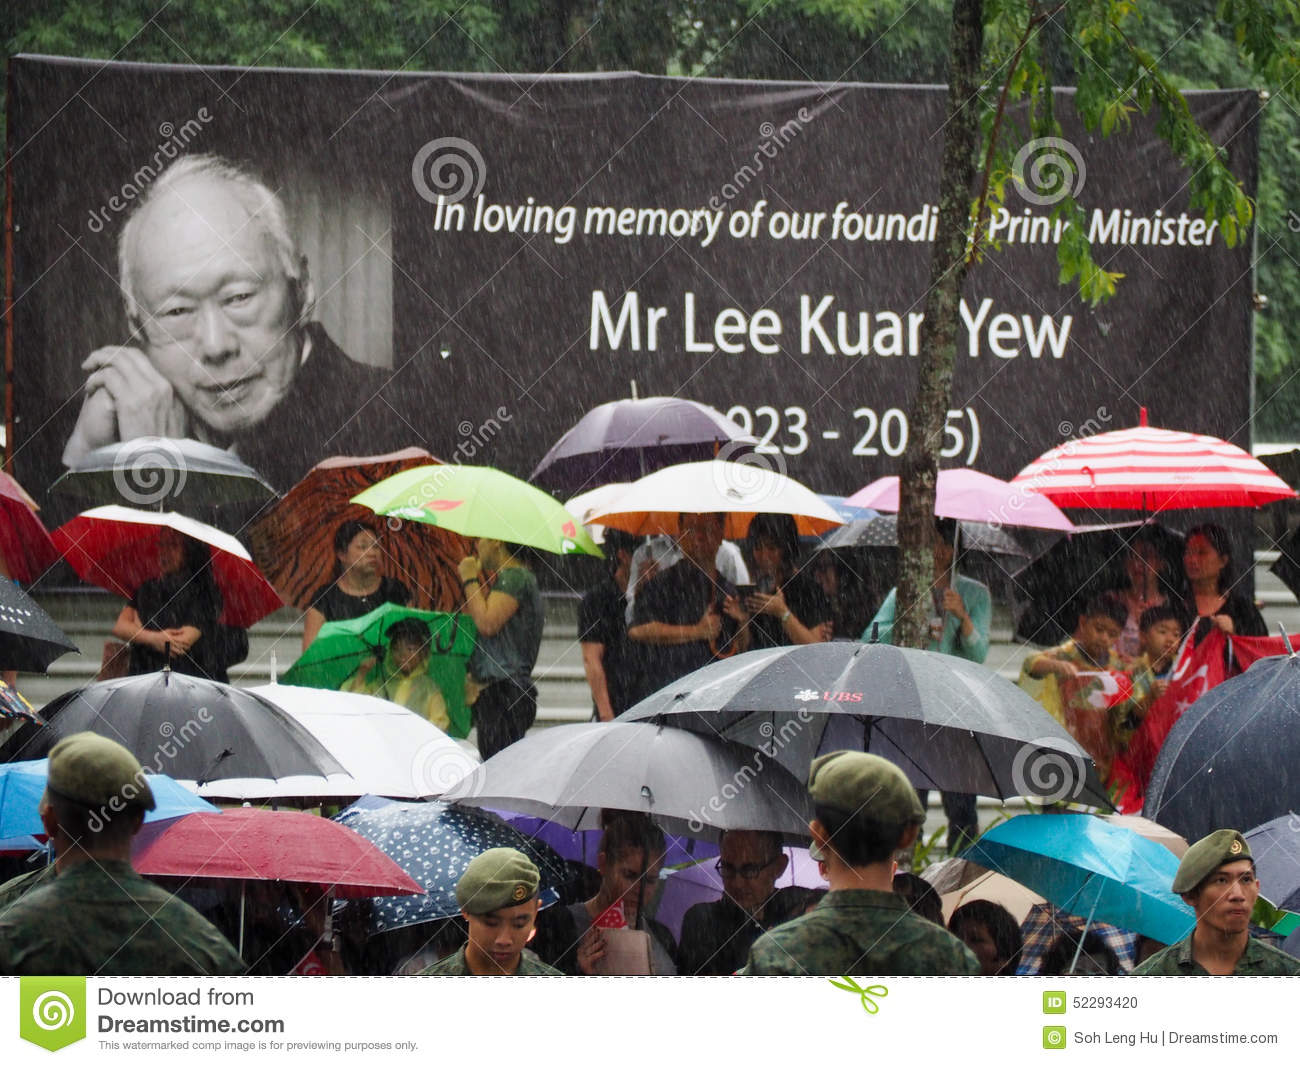 Lee Kuan Yew s funeral procession